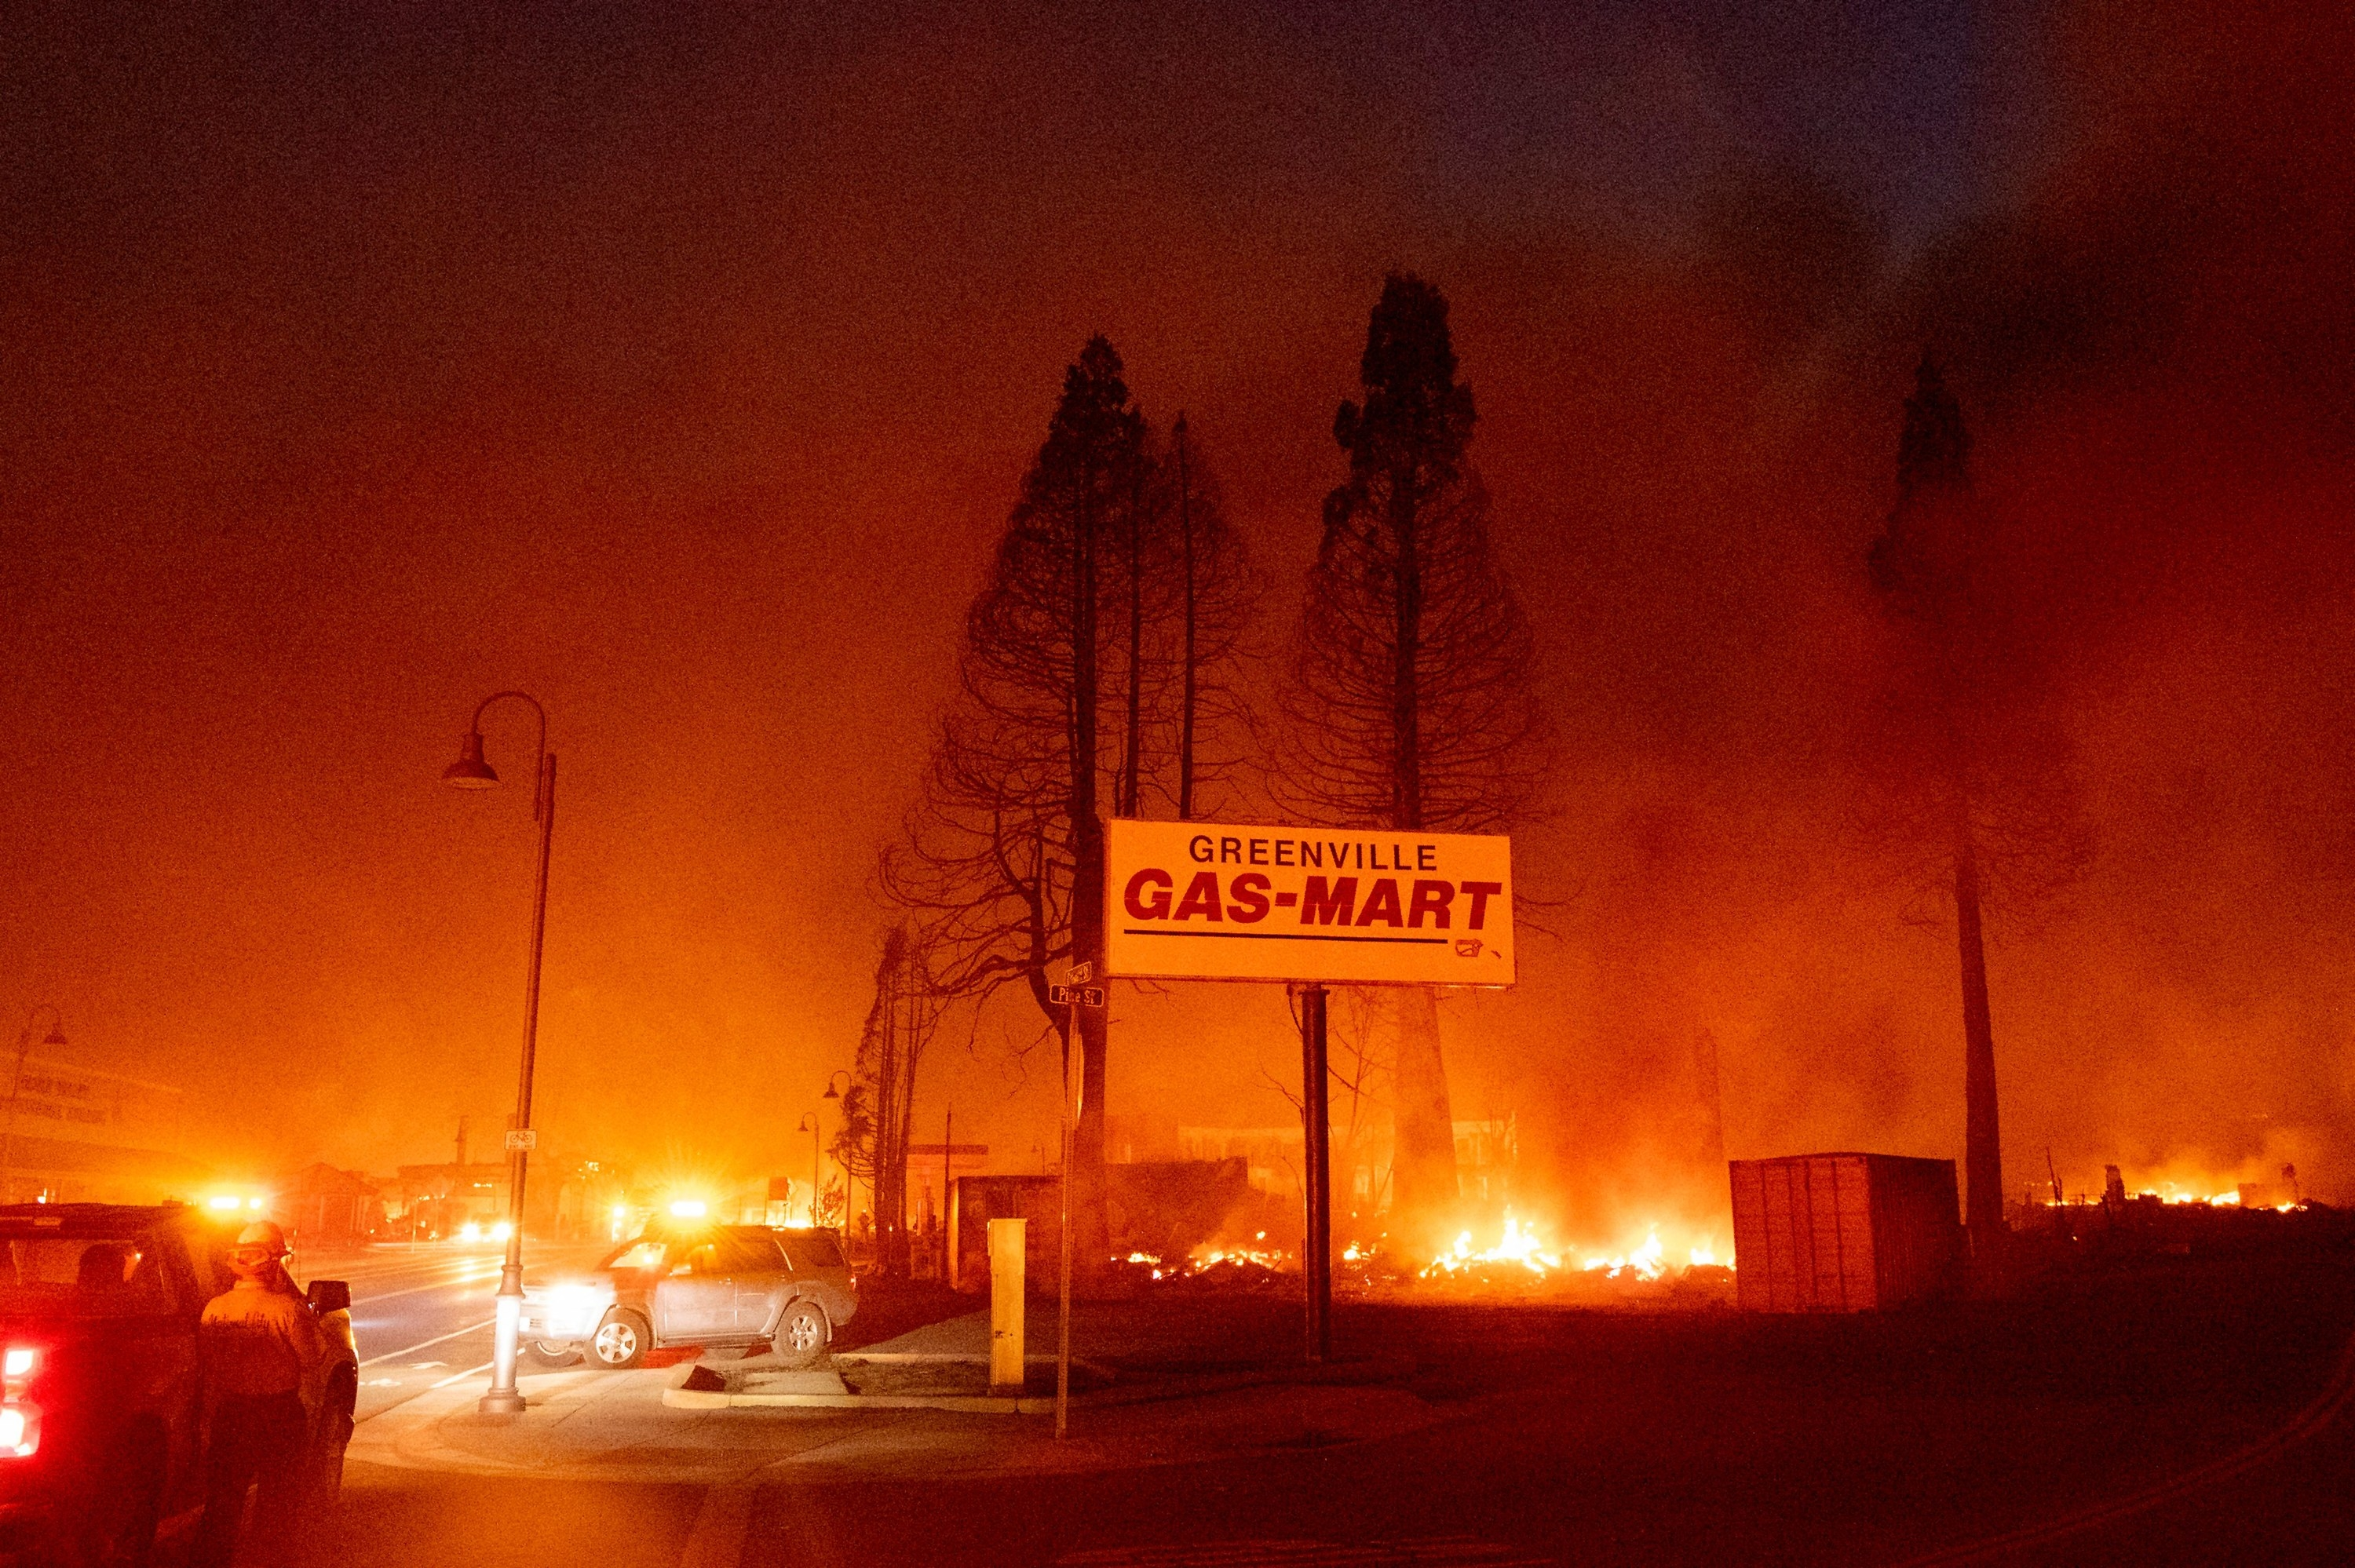 A sign for Greenville Gas Mart is surrounded by a fire under a smoky sky